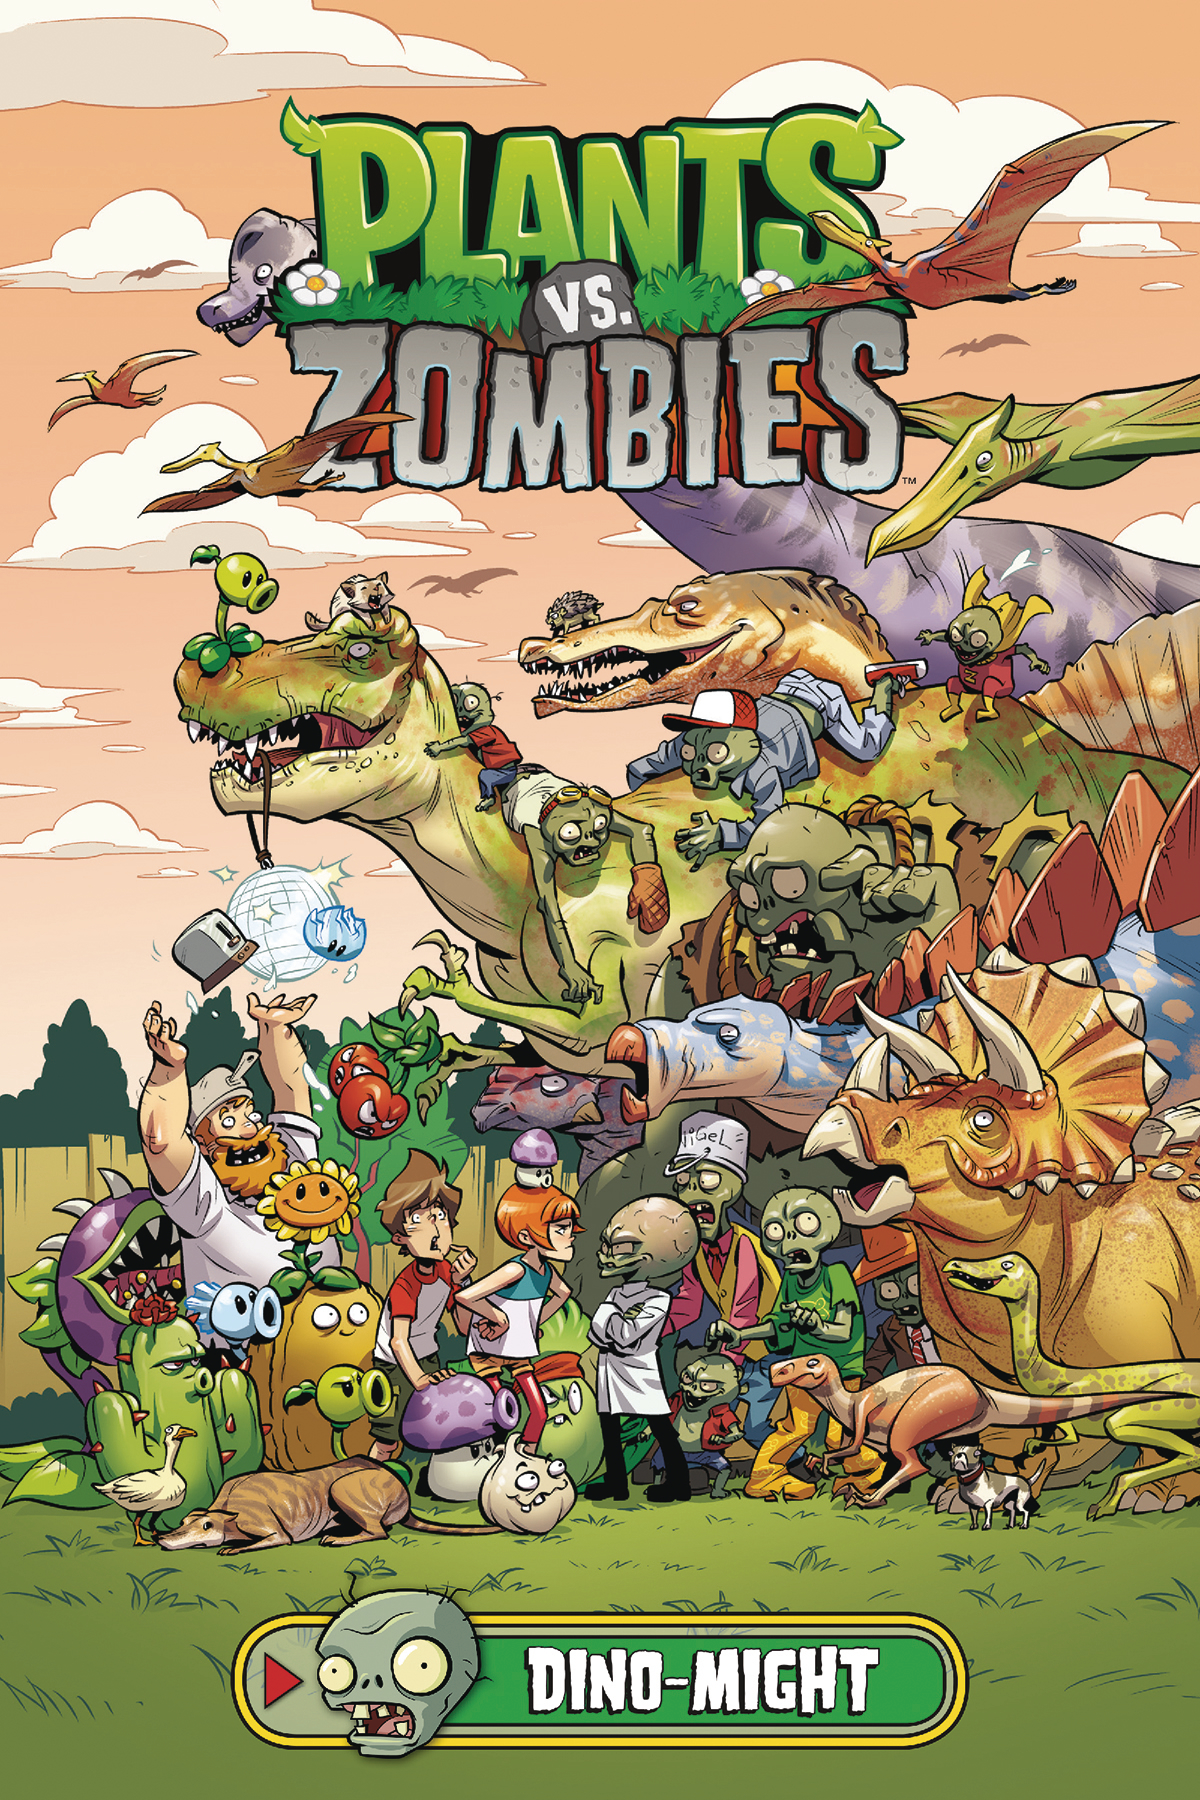 PLANTS VS ZOMBIES HC DINO-MIGHT (OCT180349)